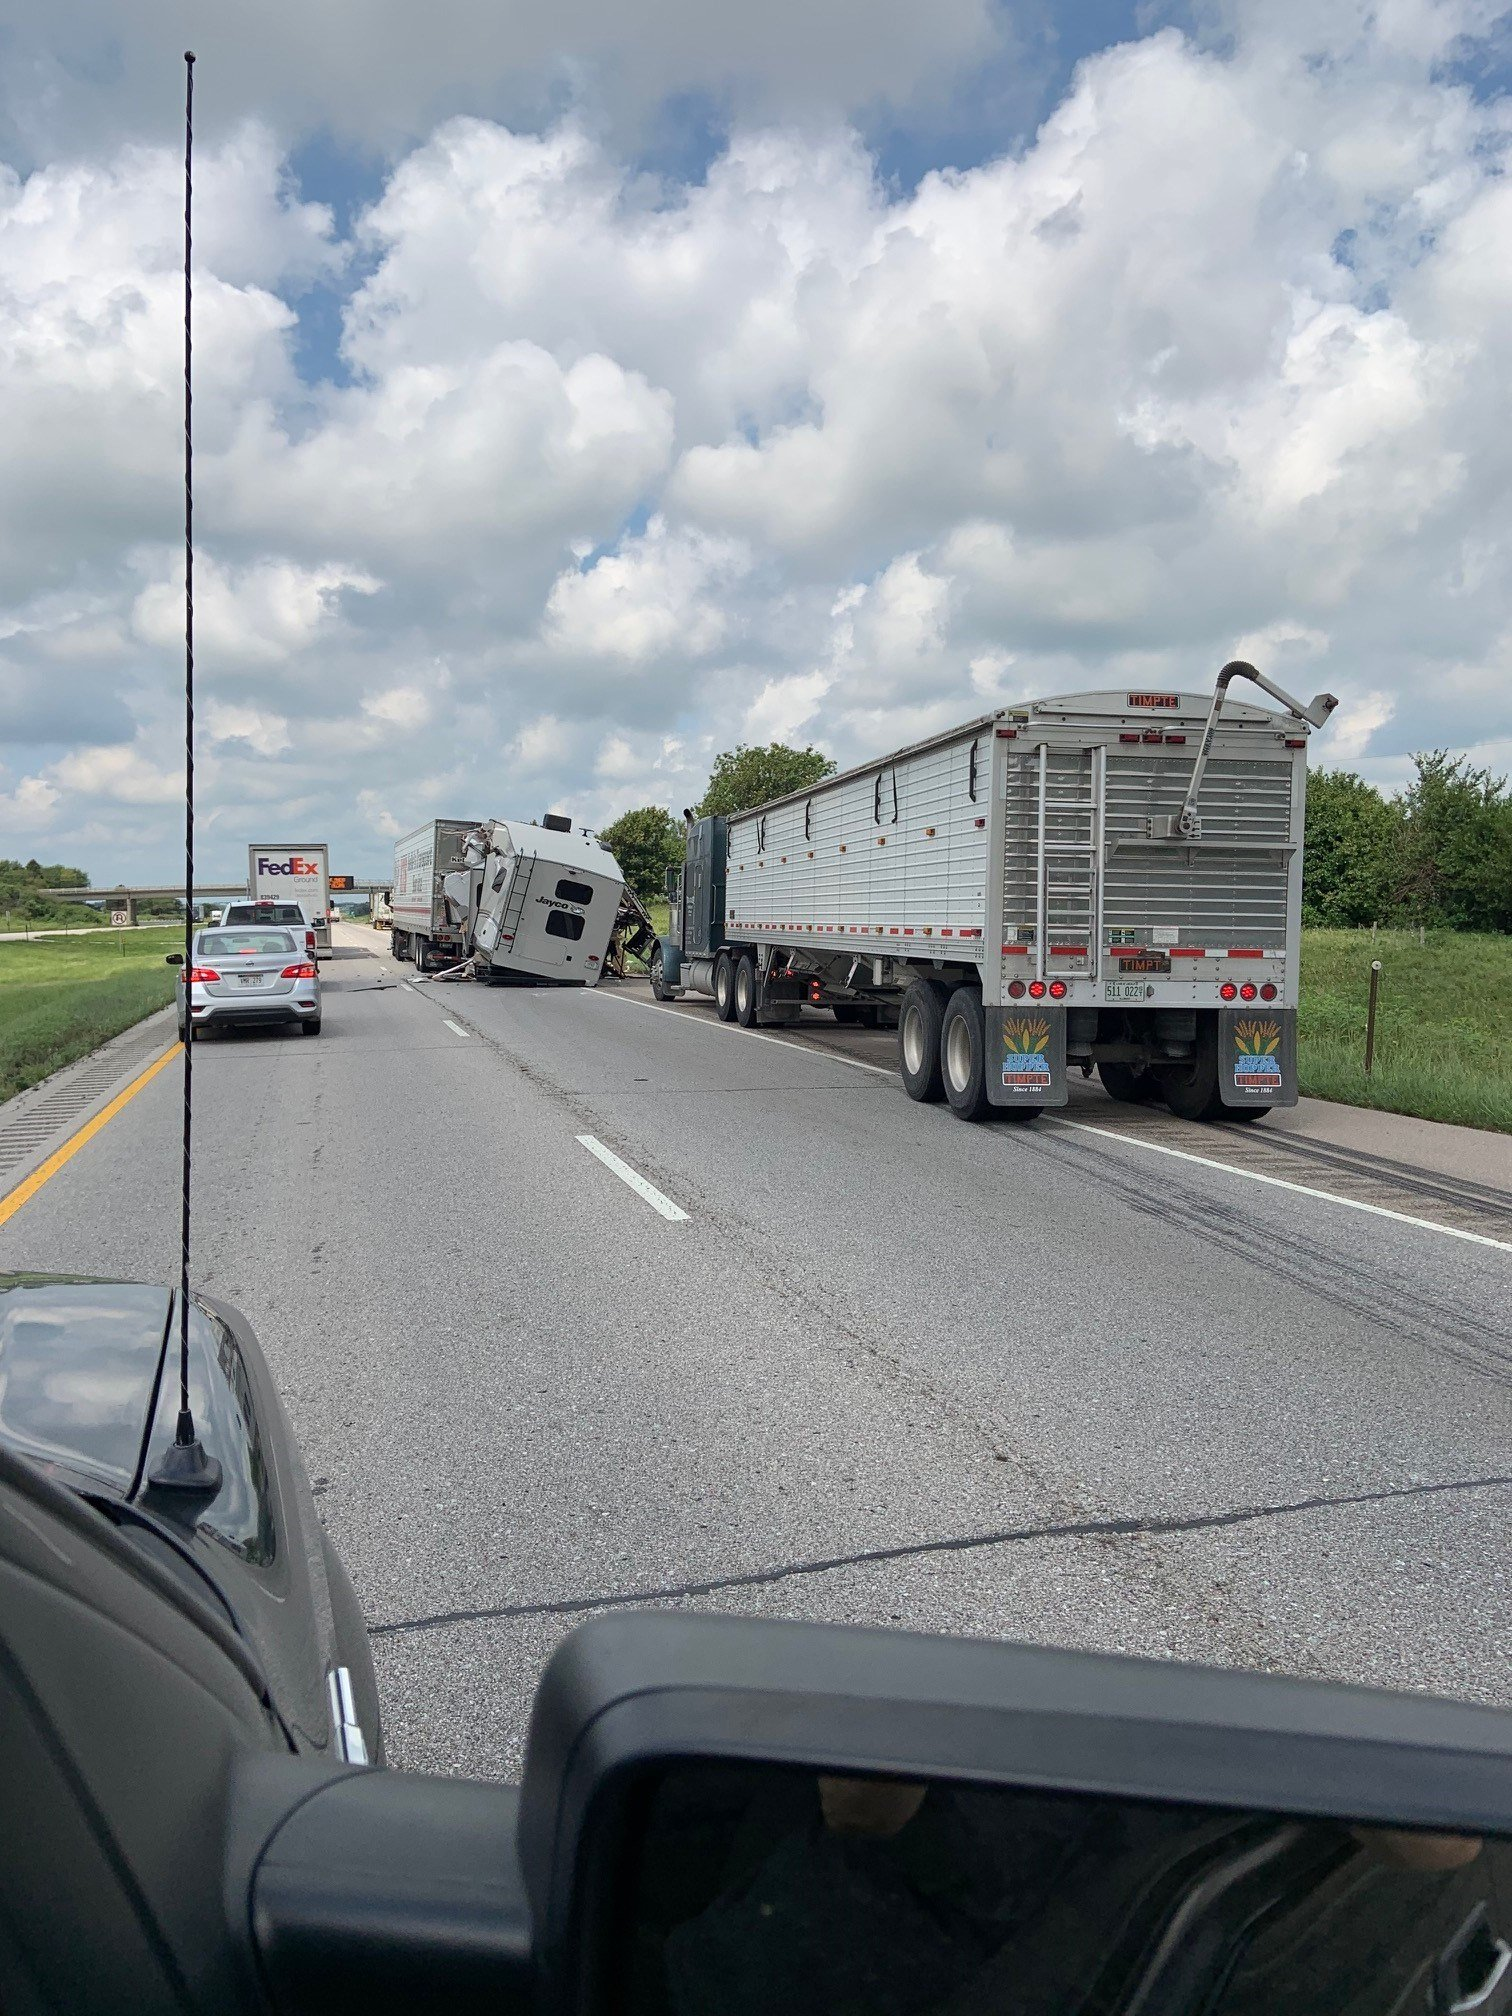 BREAKING NEWS: Serious accident west of Lincoln on I-80